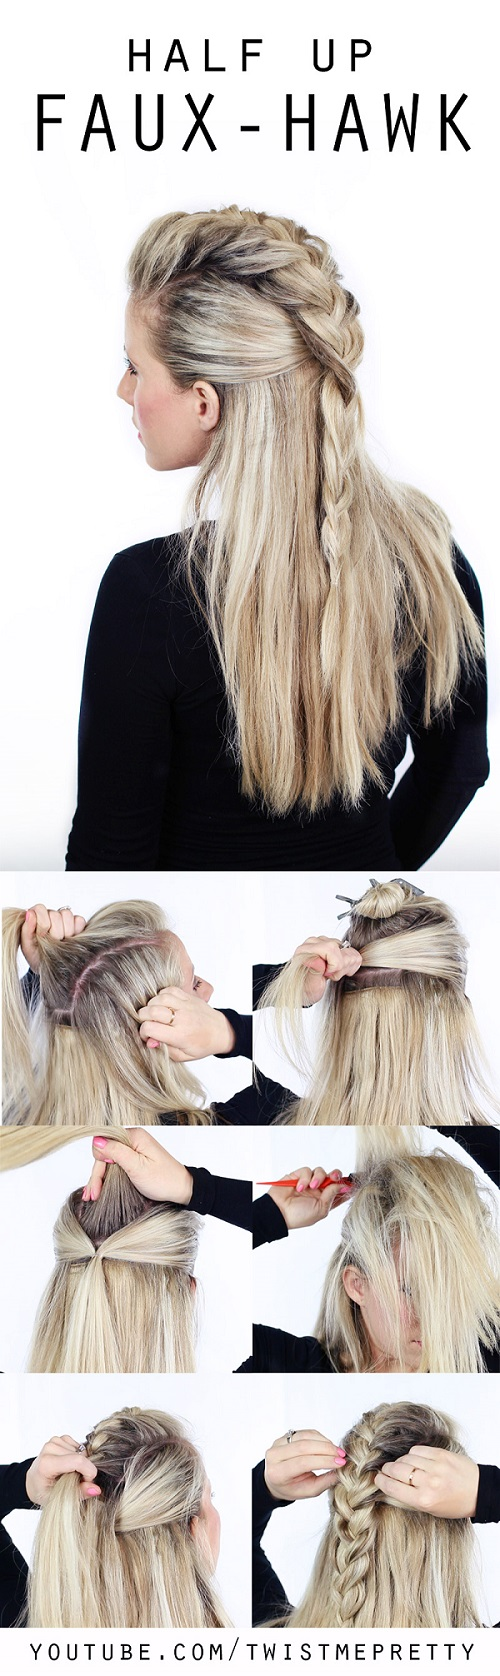 Diy Fauxhawk Braid Step By Step